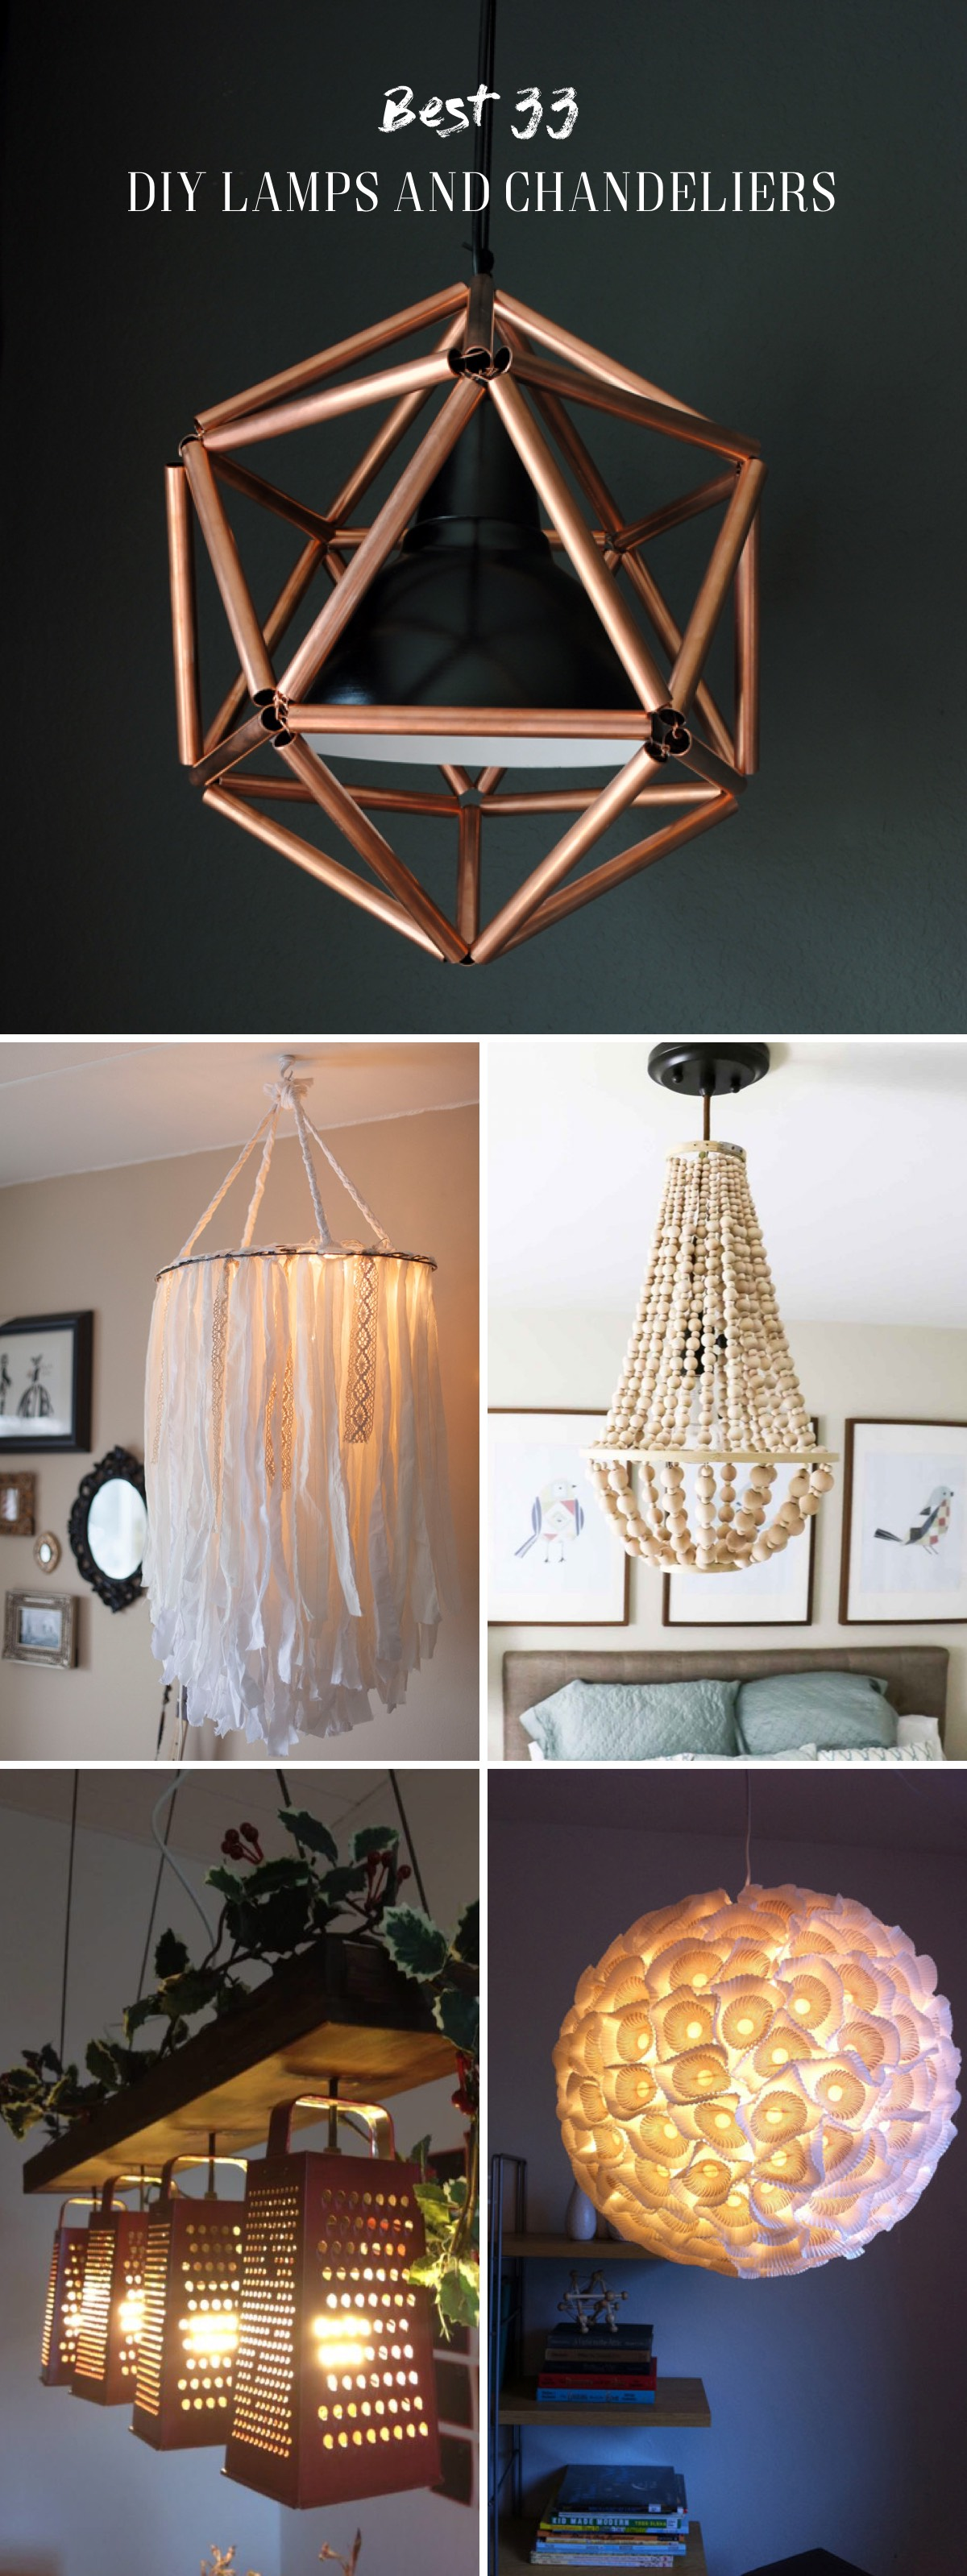 Best DIY Lamps And Chandeliers